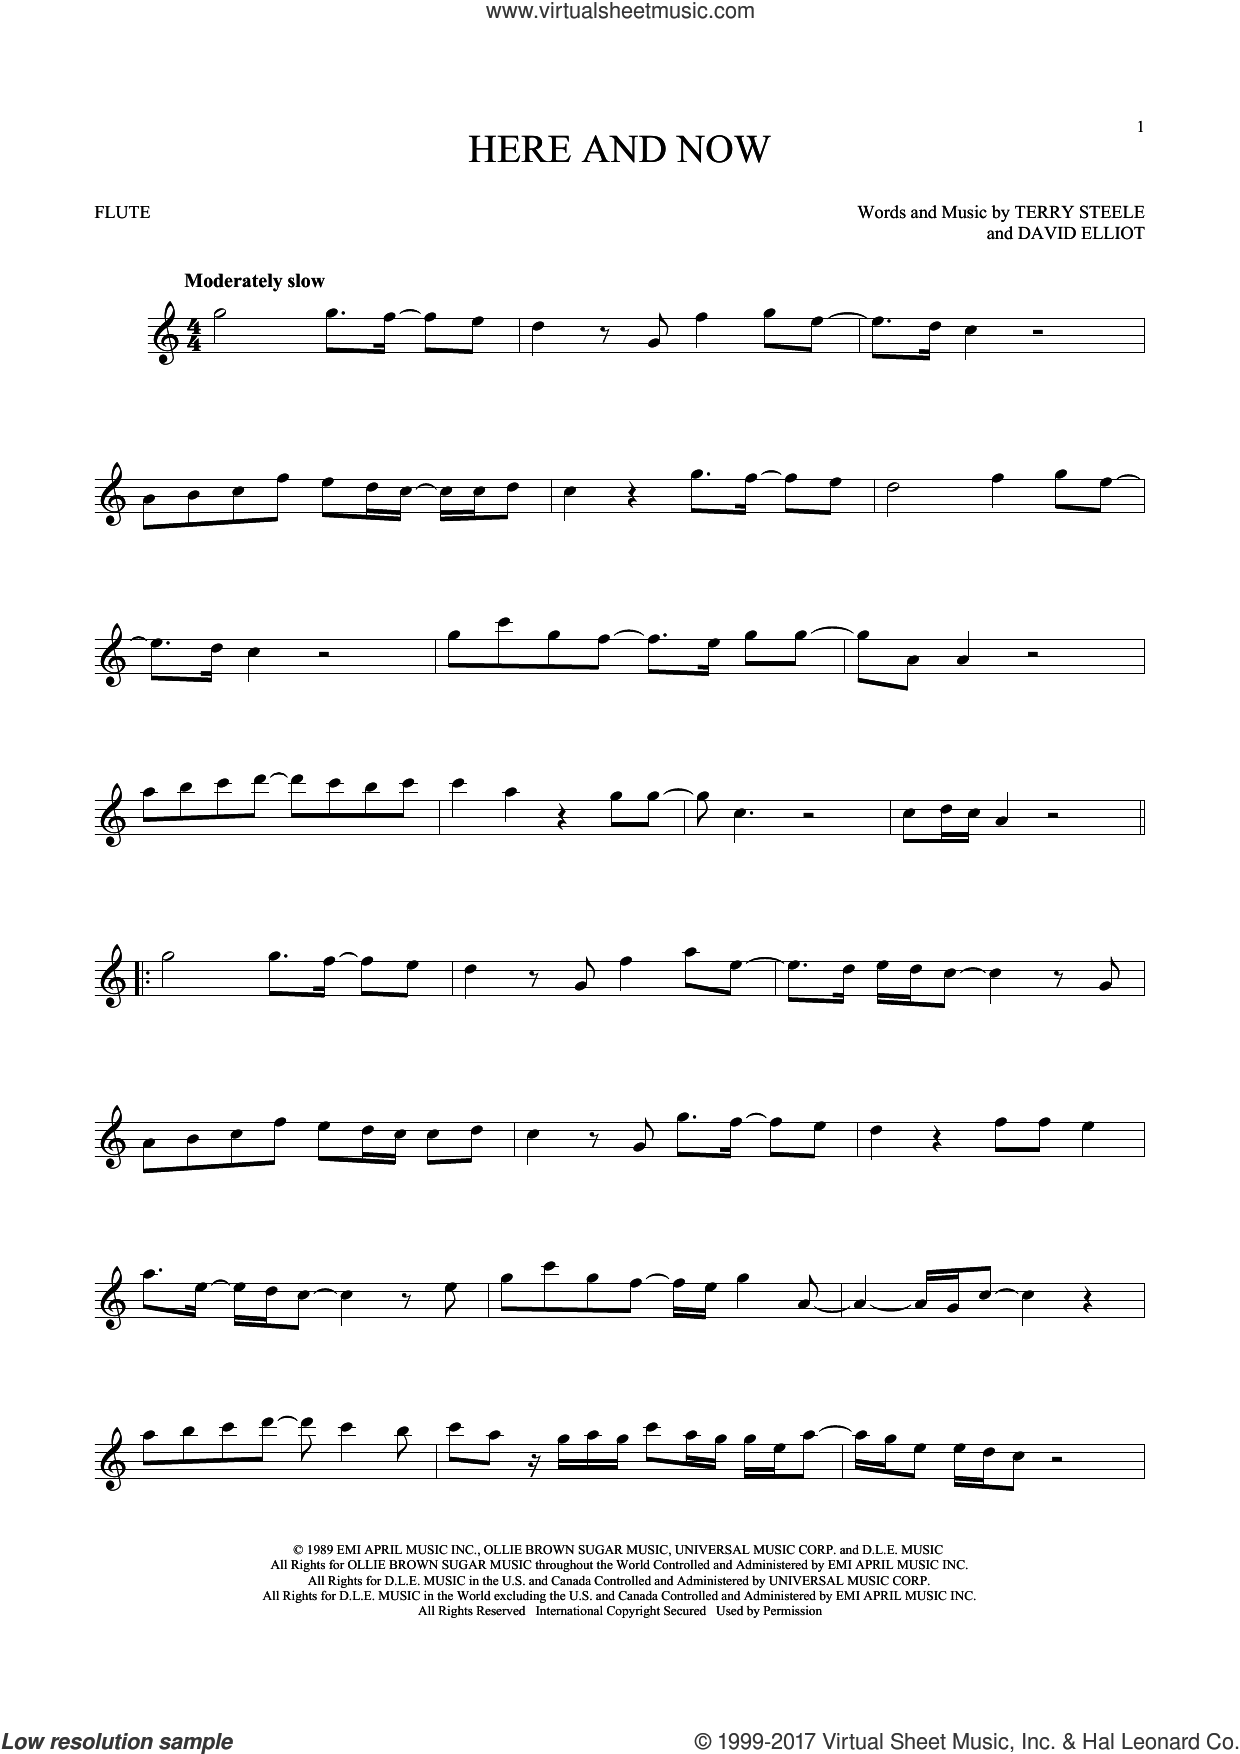 Here And Now sheet music for flute solo by Luther Vandross, David Elliot and Terry Steele, wedding score, intermediate skill level